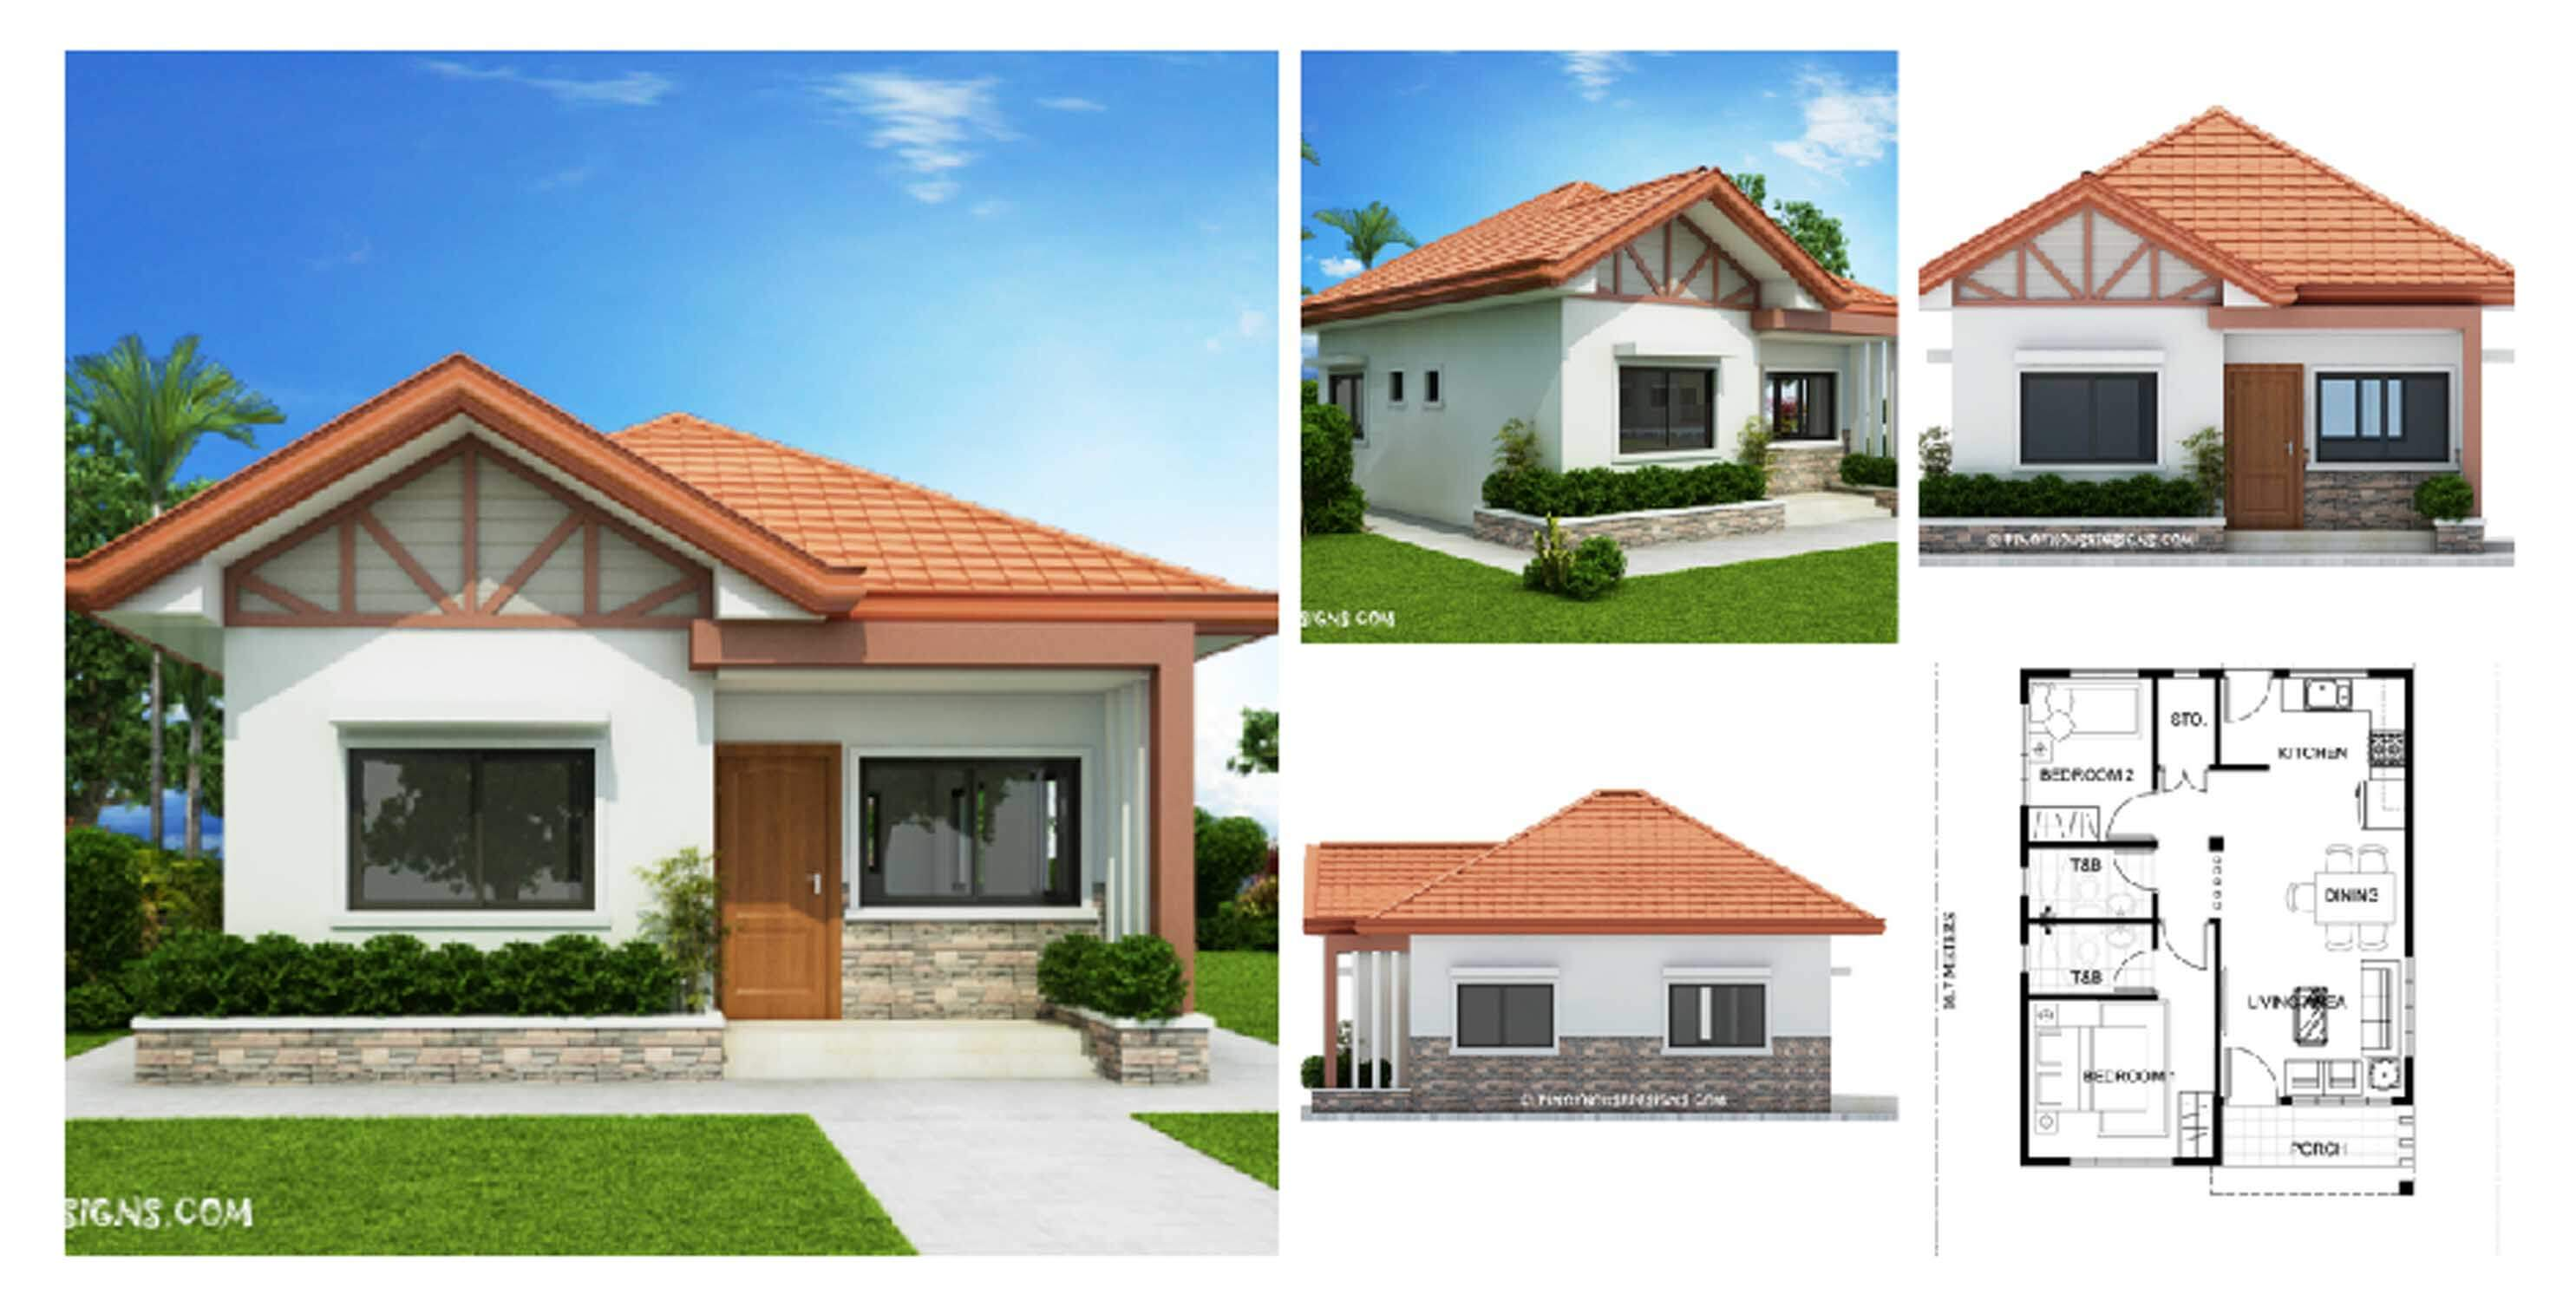 Two Bedroom Small House Design (PHD-2017035) & Two Bedroom Small House Design (PHD-2017035) - Engineering Discoveries